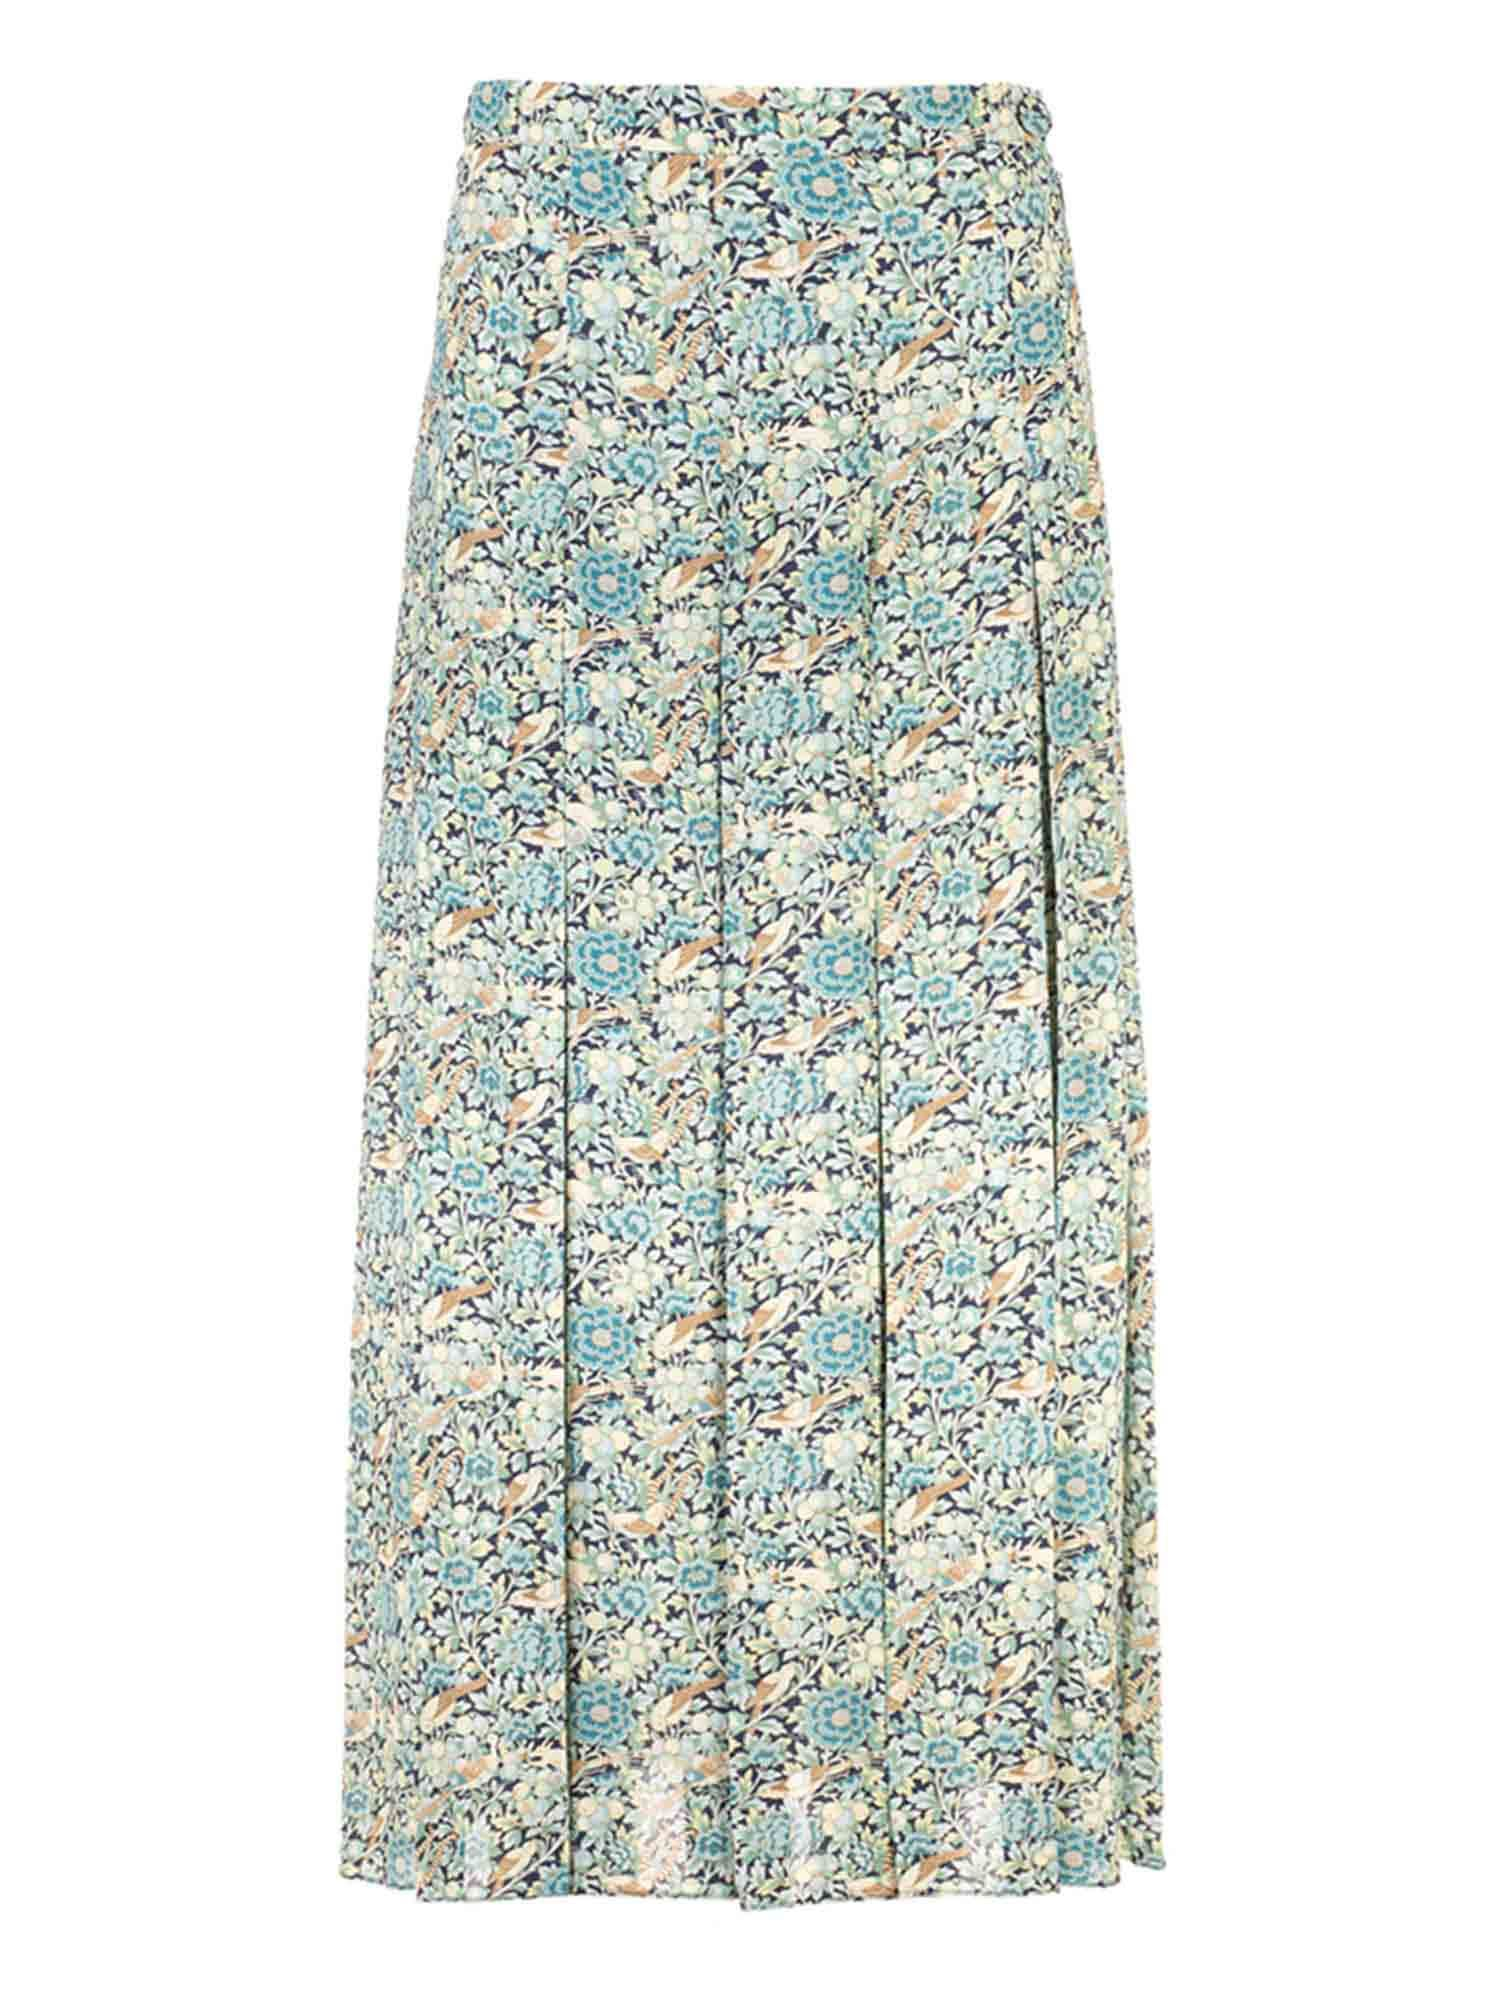 Gucci LIBERTY FLORAL PRINT SKIRT IN LIGHT BLUE